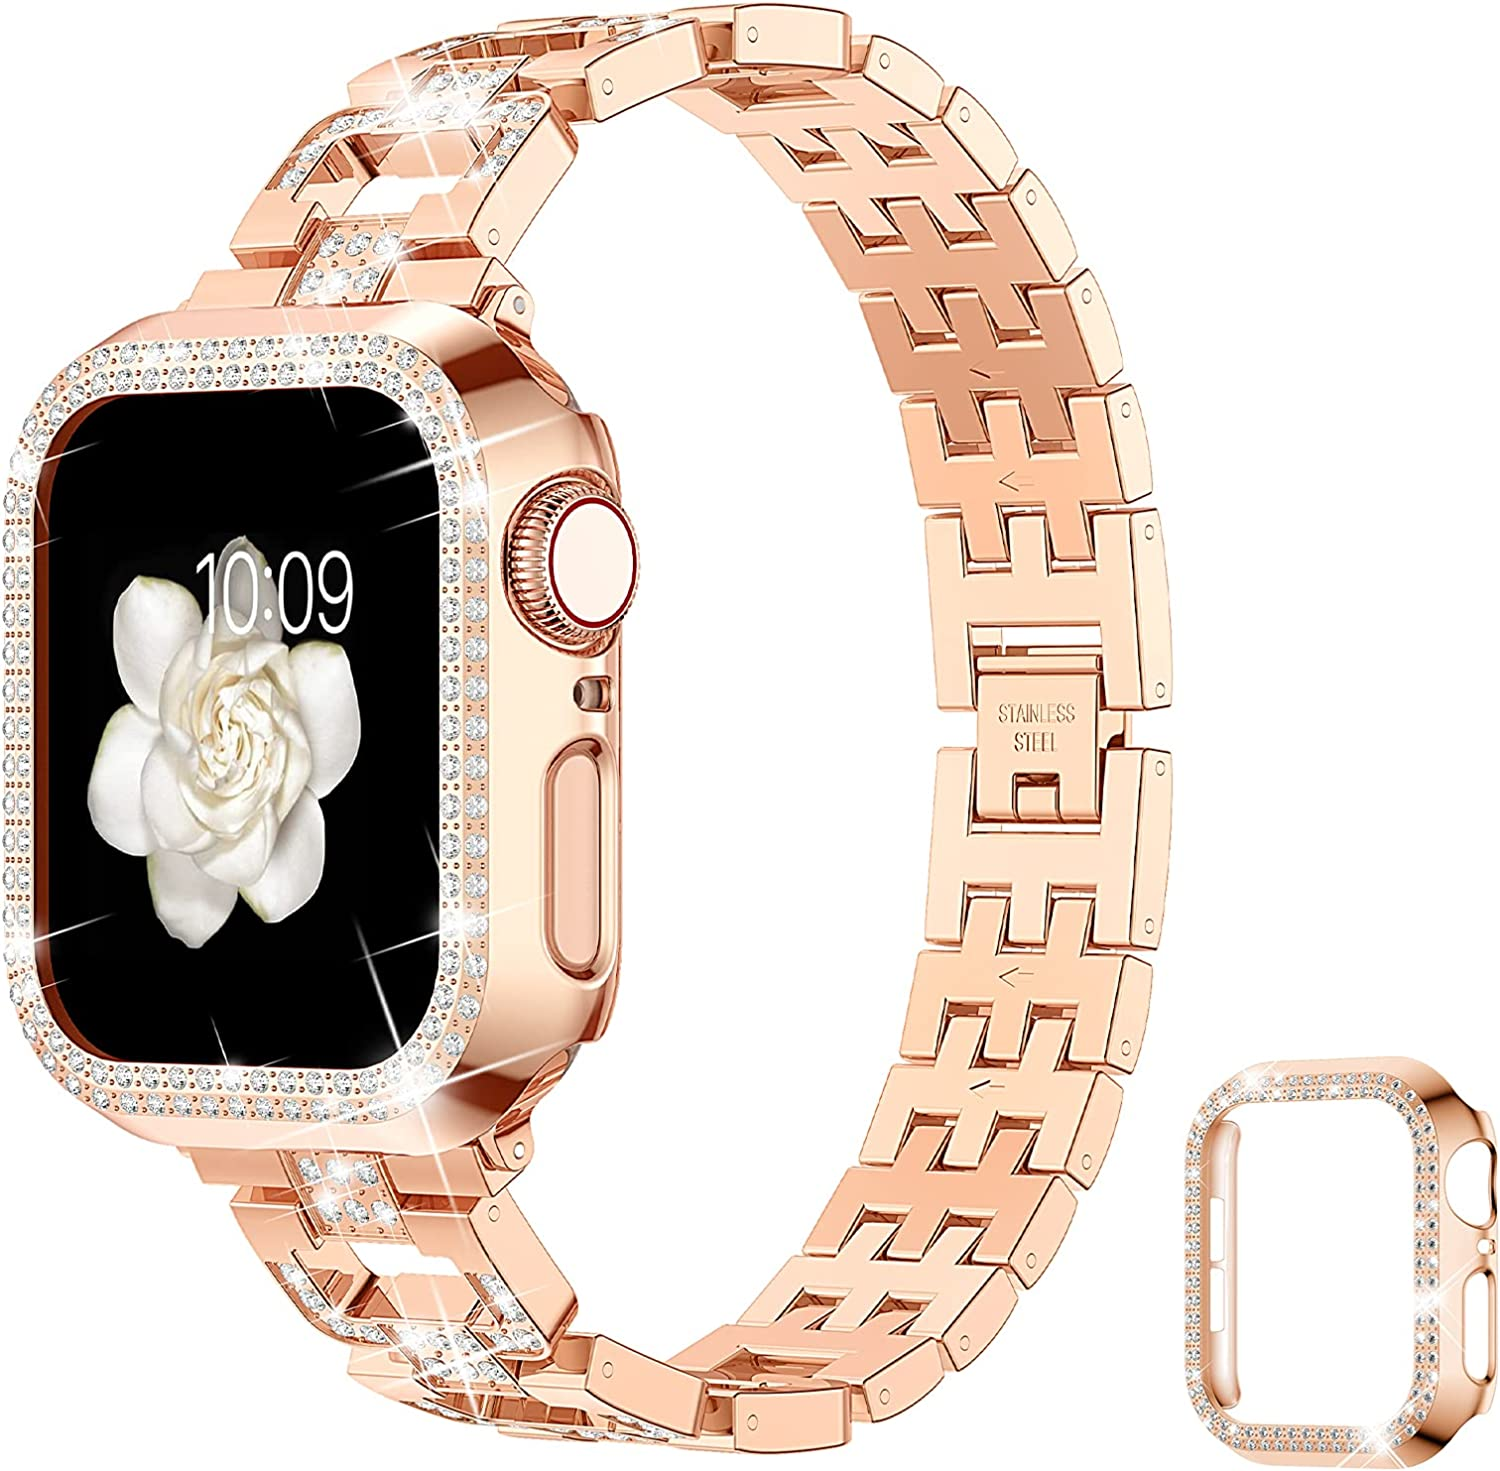 Goton Bling Band & Bumper Case Compatible with Apple Watch 38mm, Women Diamond Metal Wristband Strap with Cover for iWatch Series 3/2/1 (Rose Gold,38mm)